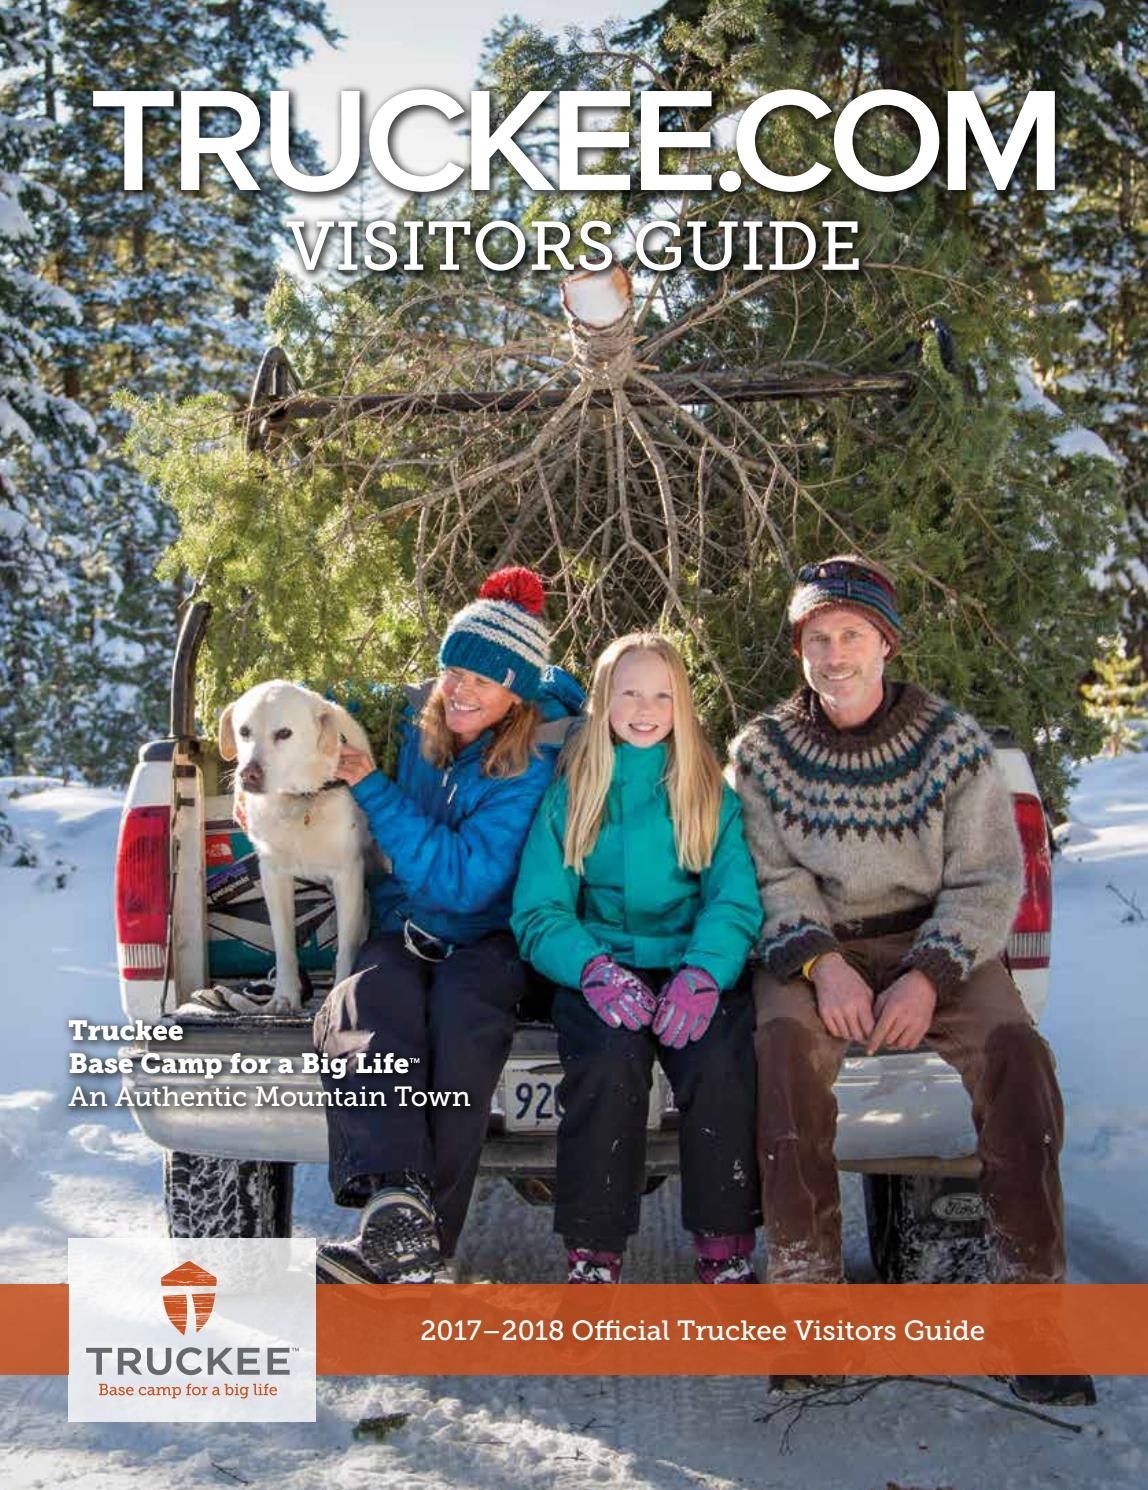 d0f0aebcc27f7c 2017 Truckee.com winter visitor guide by Just Imagine Marketing and ...